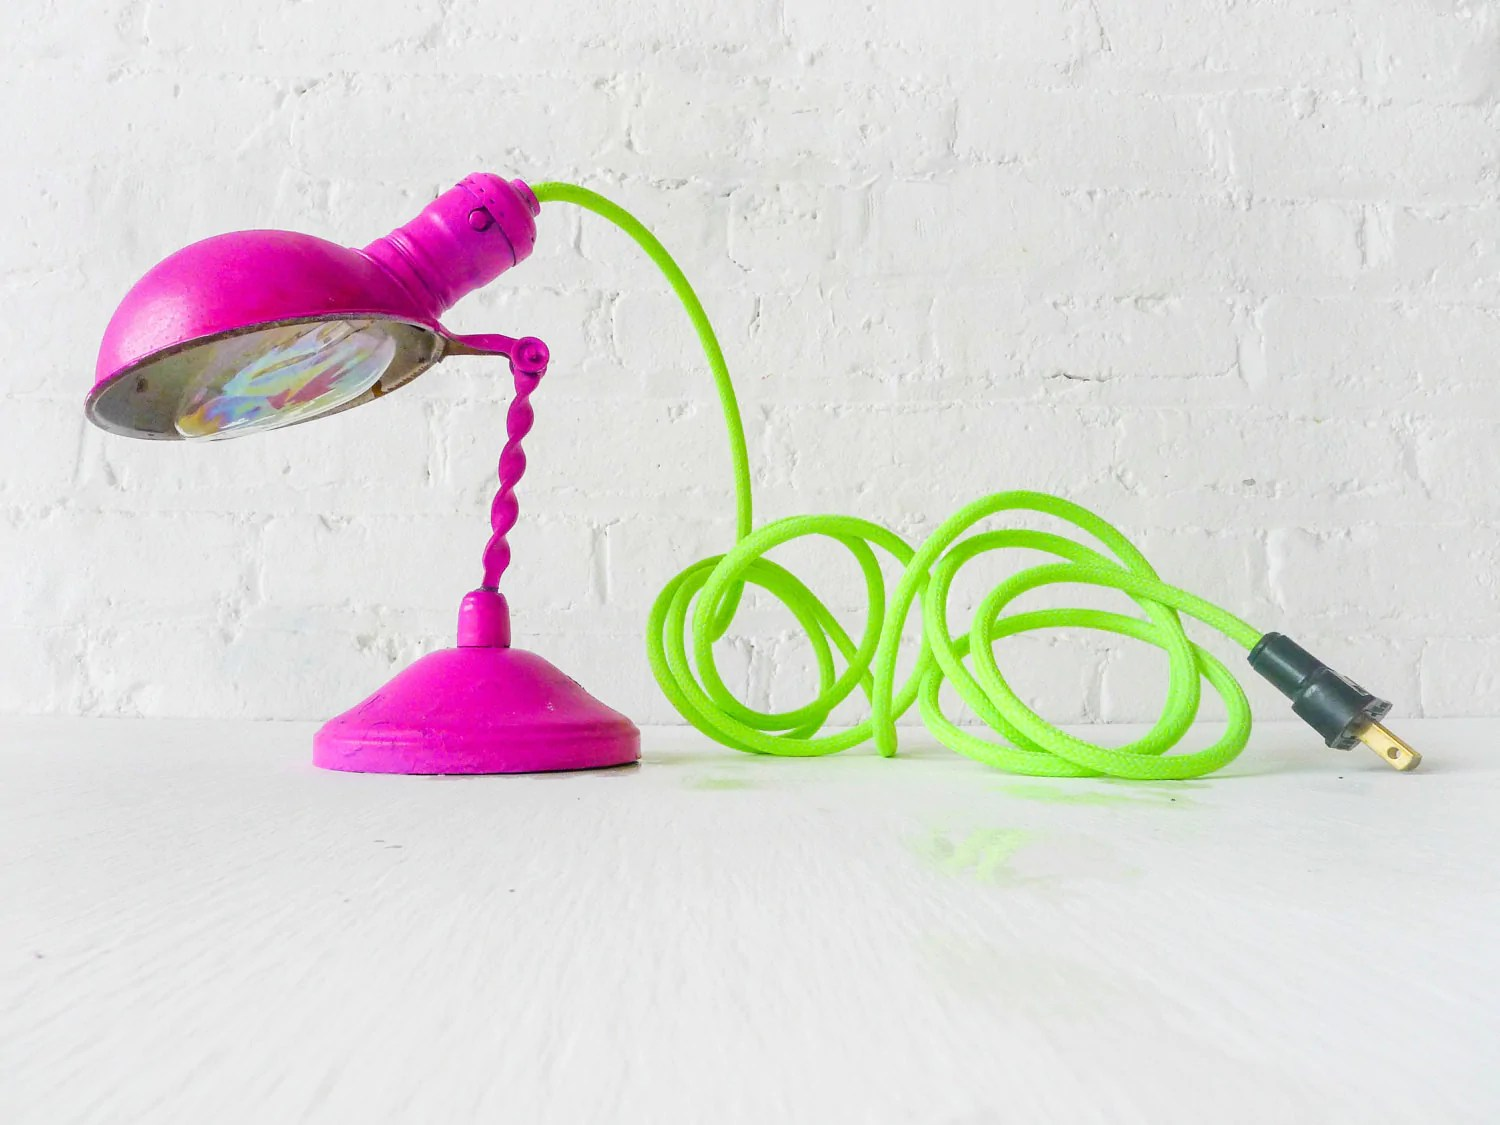 Bright Colored Table Lamps Vintage Hot Pink Lamp With Neon Green Yellow Cord